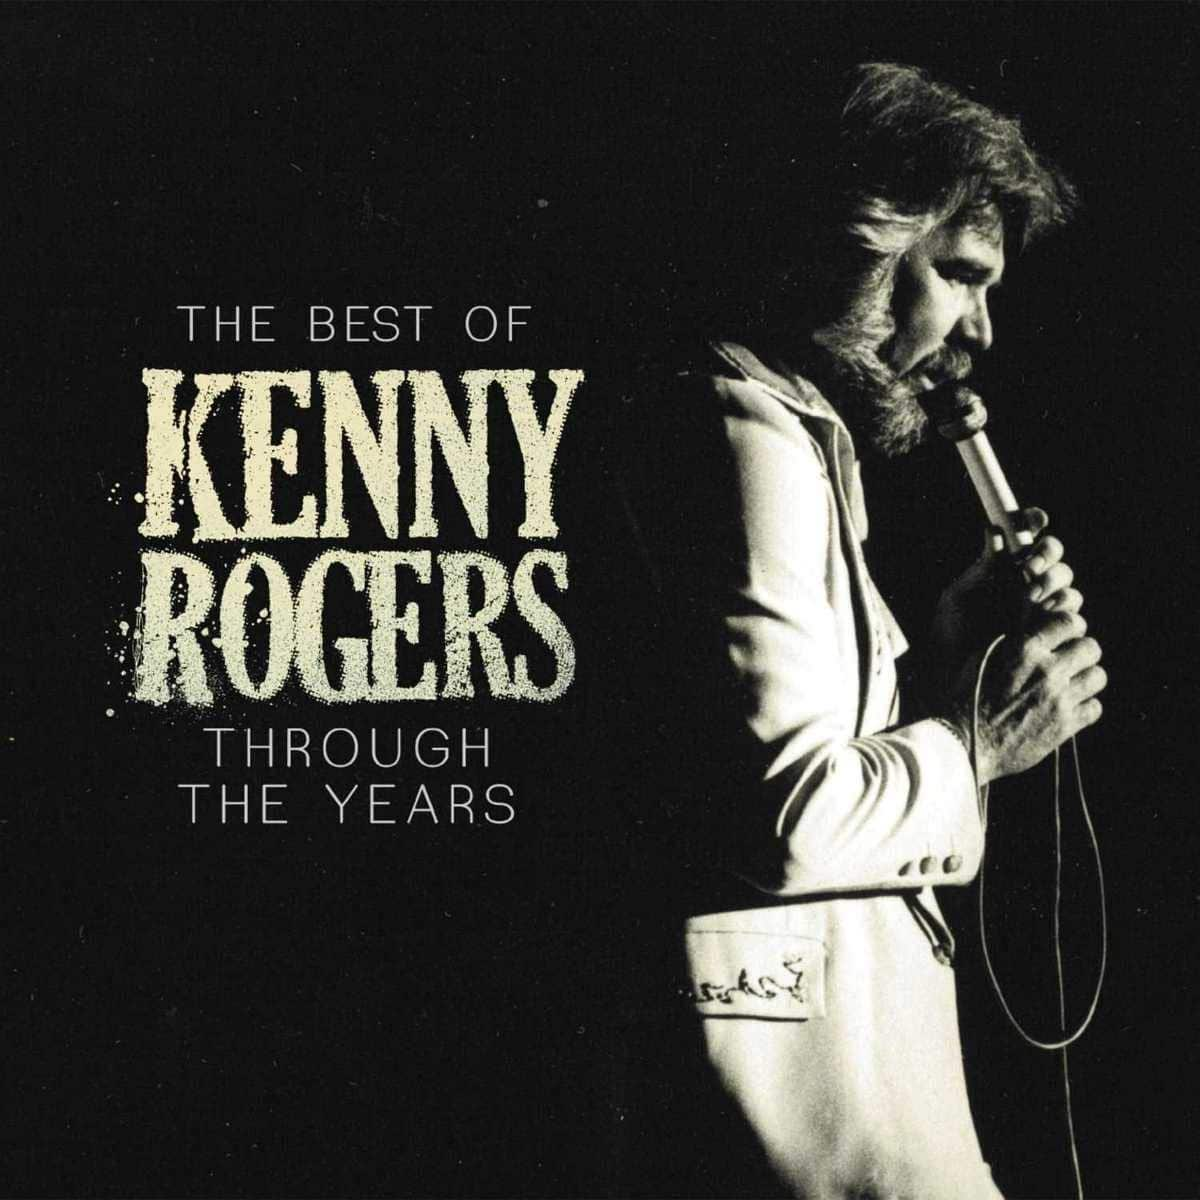 kenny rogers is number 1 on the country charts